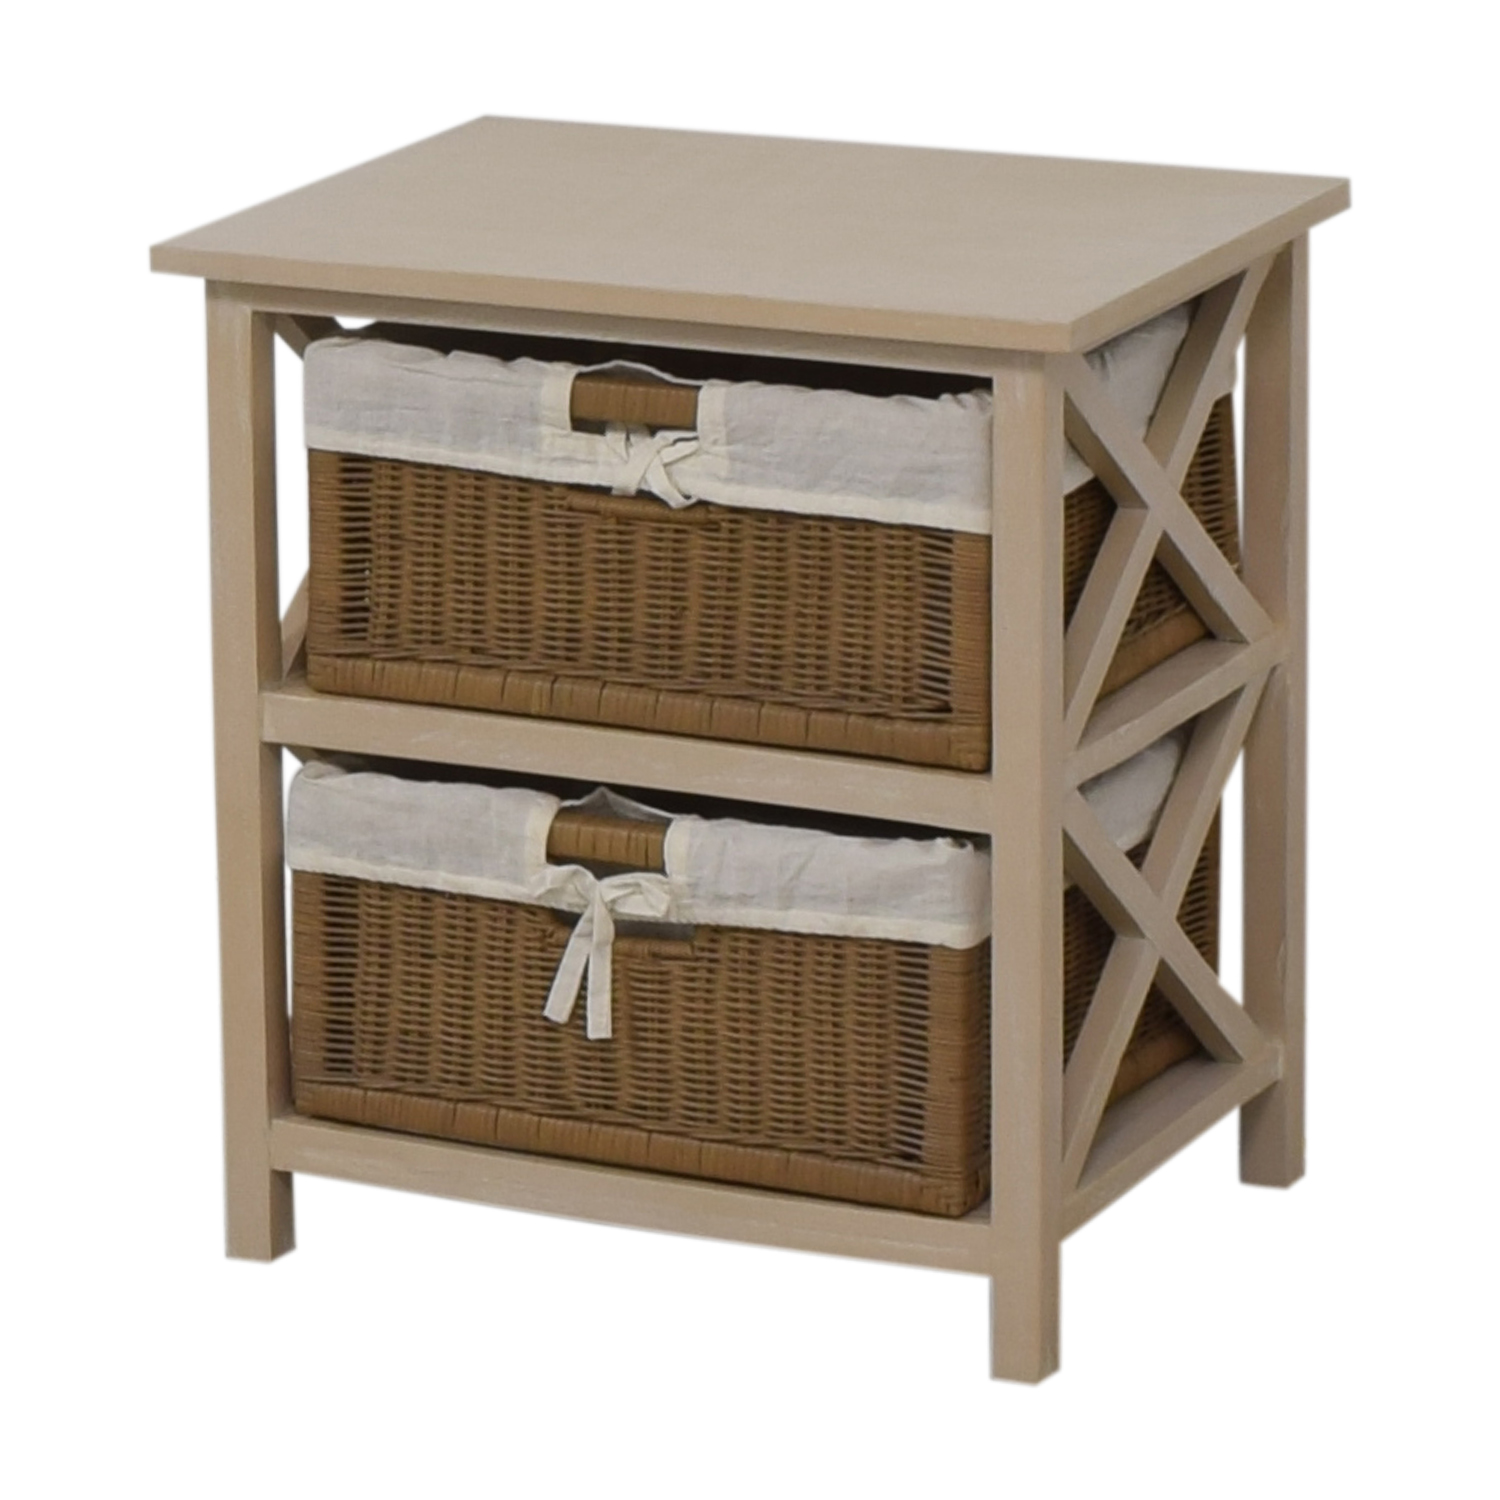 End Table With Two Wicker Baskets dimensions